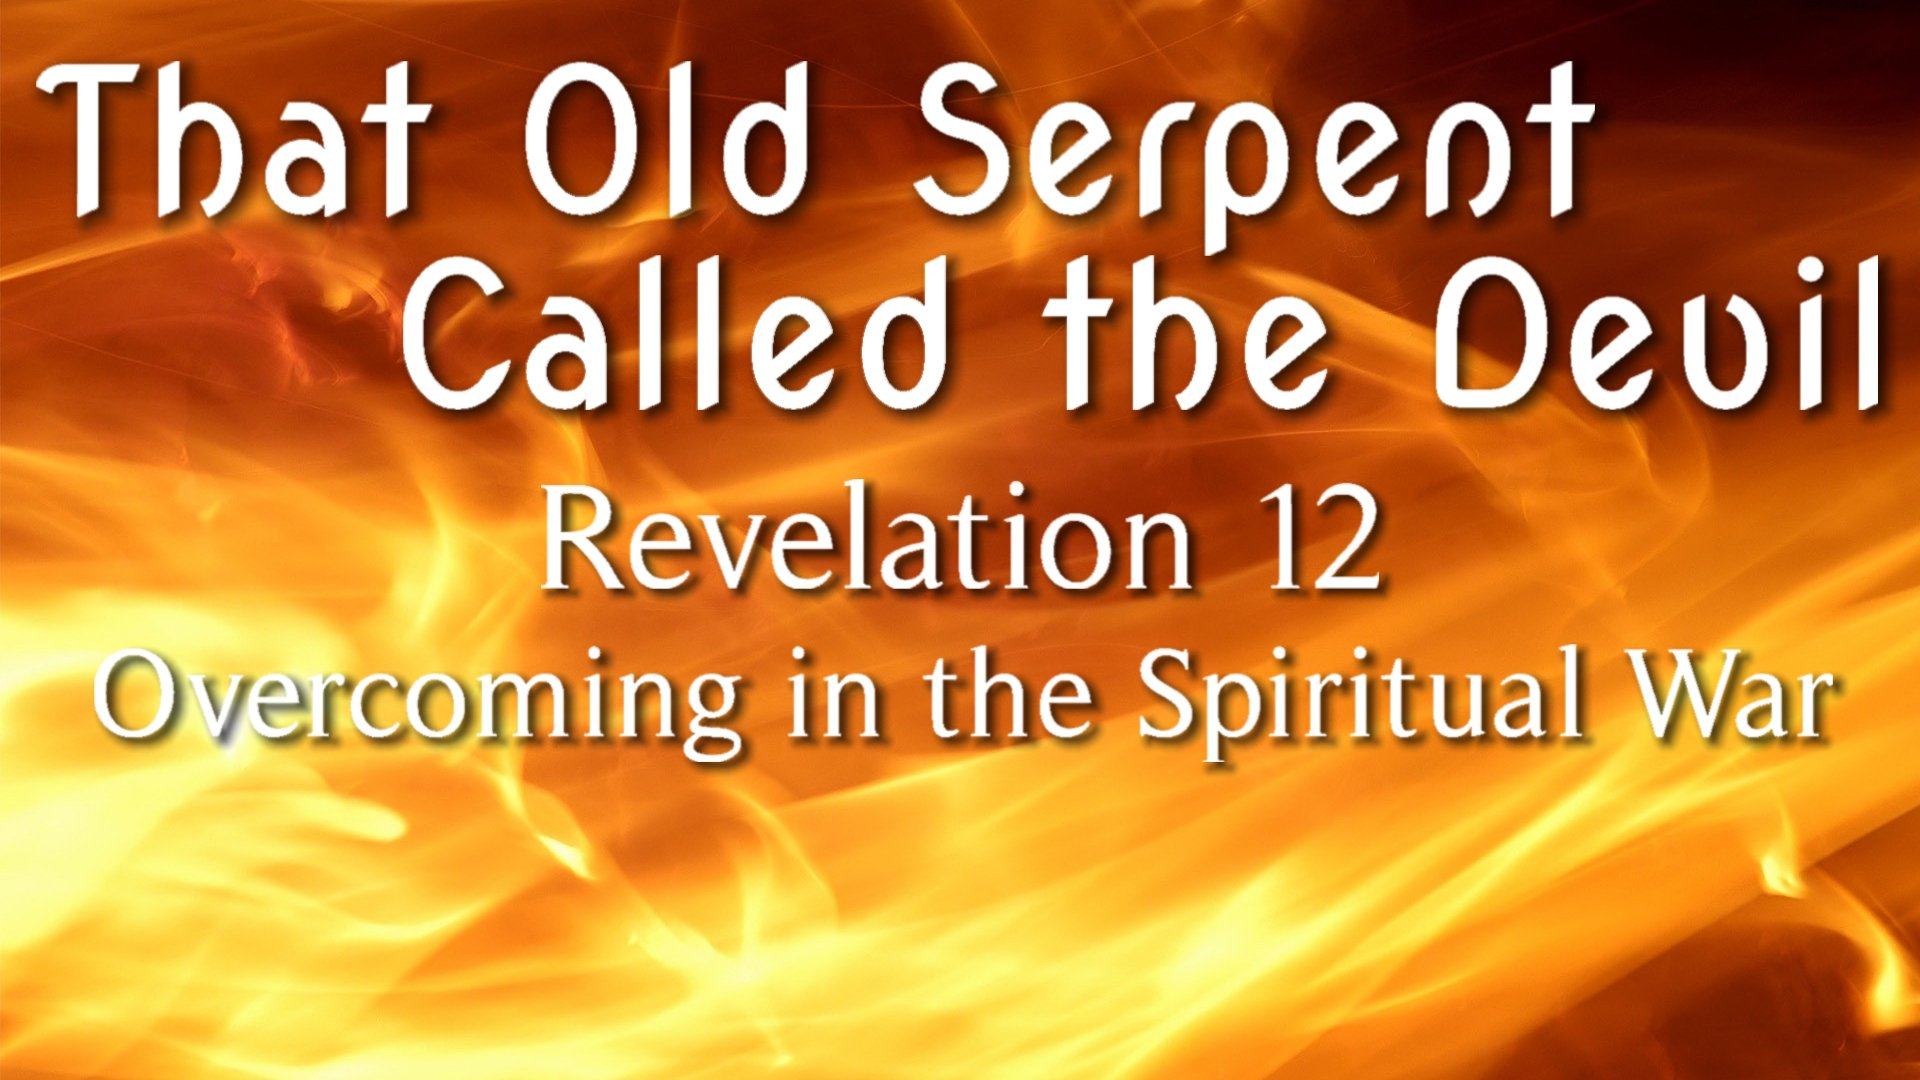 The Old Serpent Called the Devil